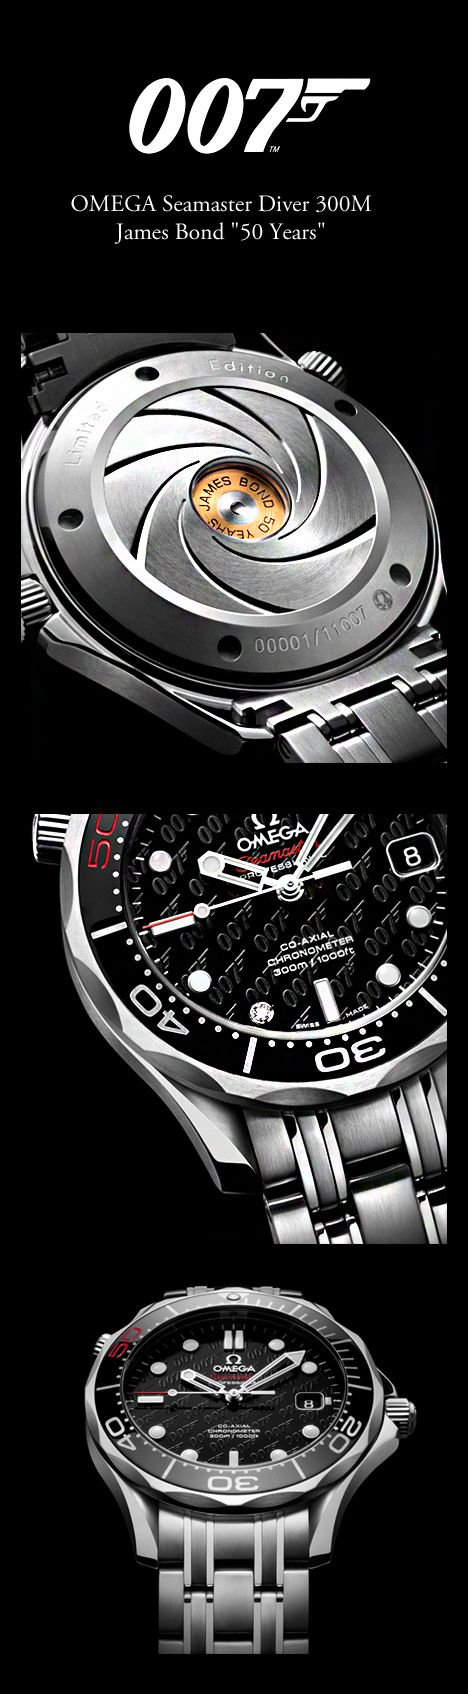 "OMEGA Seamaster Diver 300M James Bond ""50 Years""                                                                                                                                                      Más"